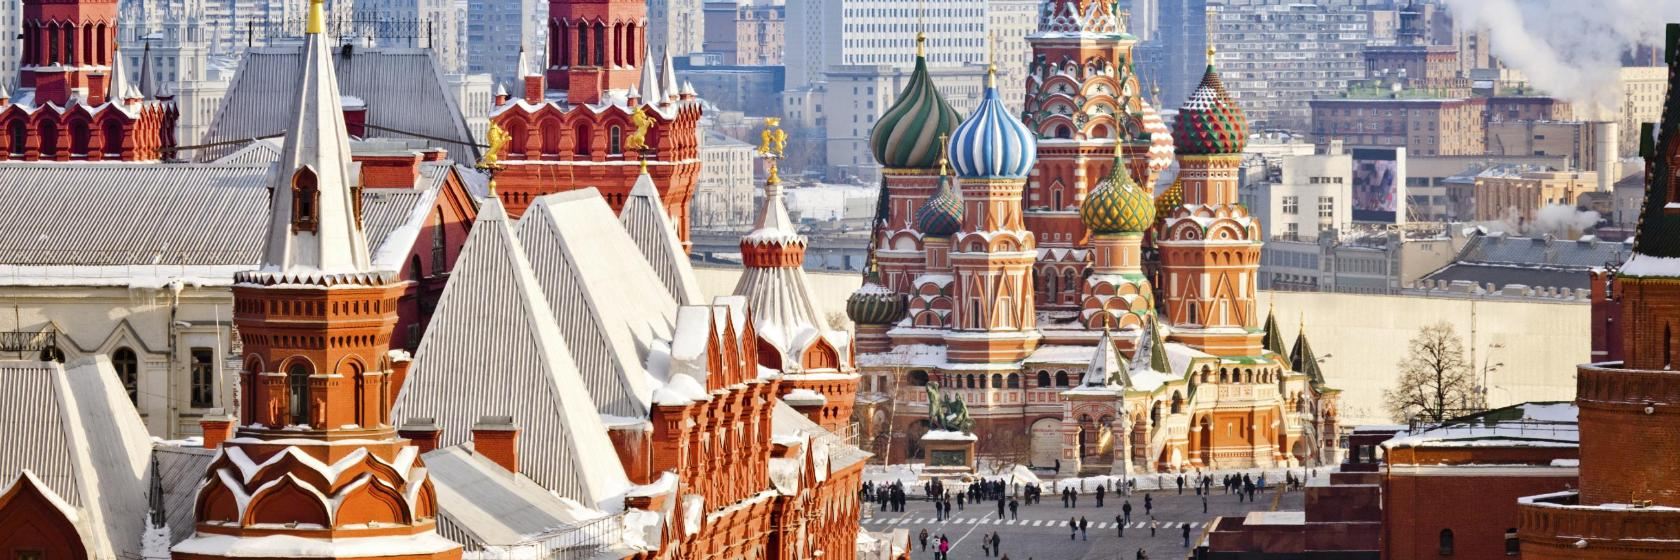 Moscow (مسکو)